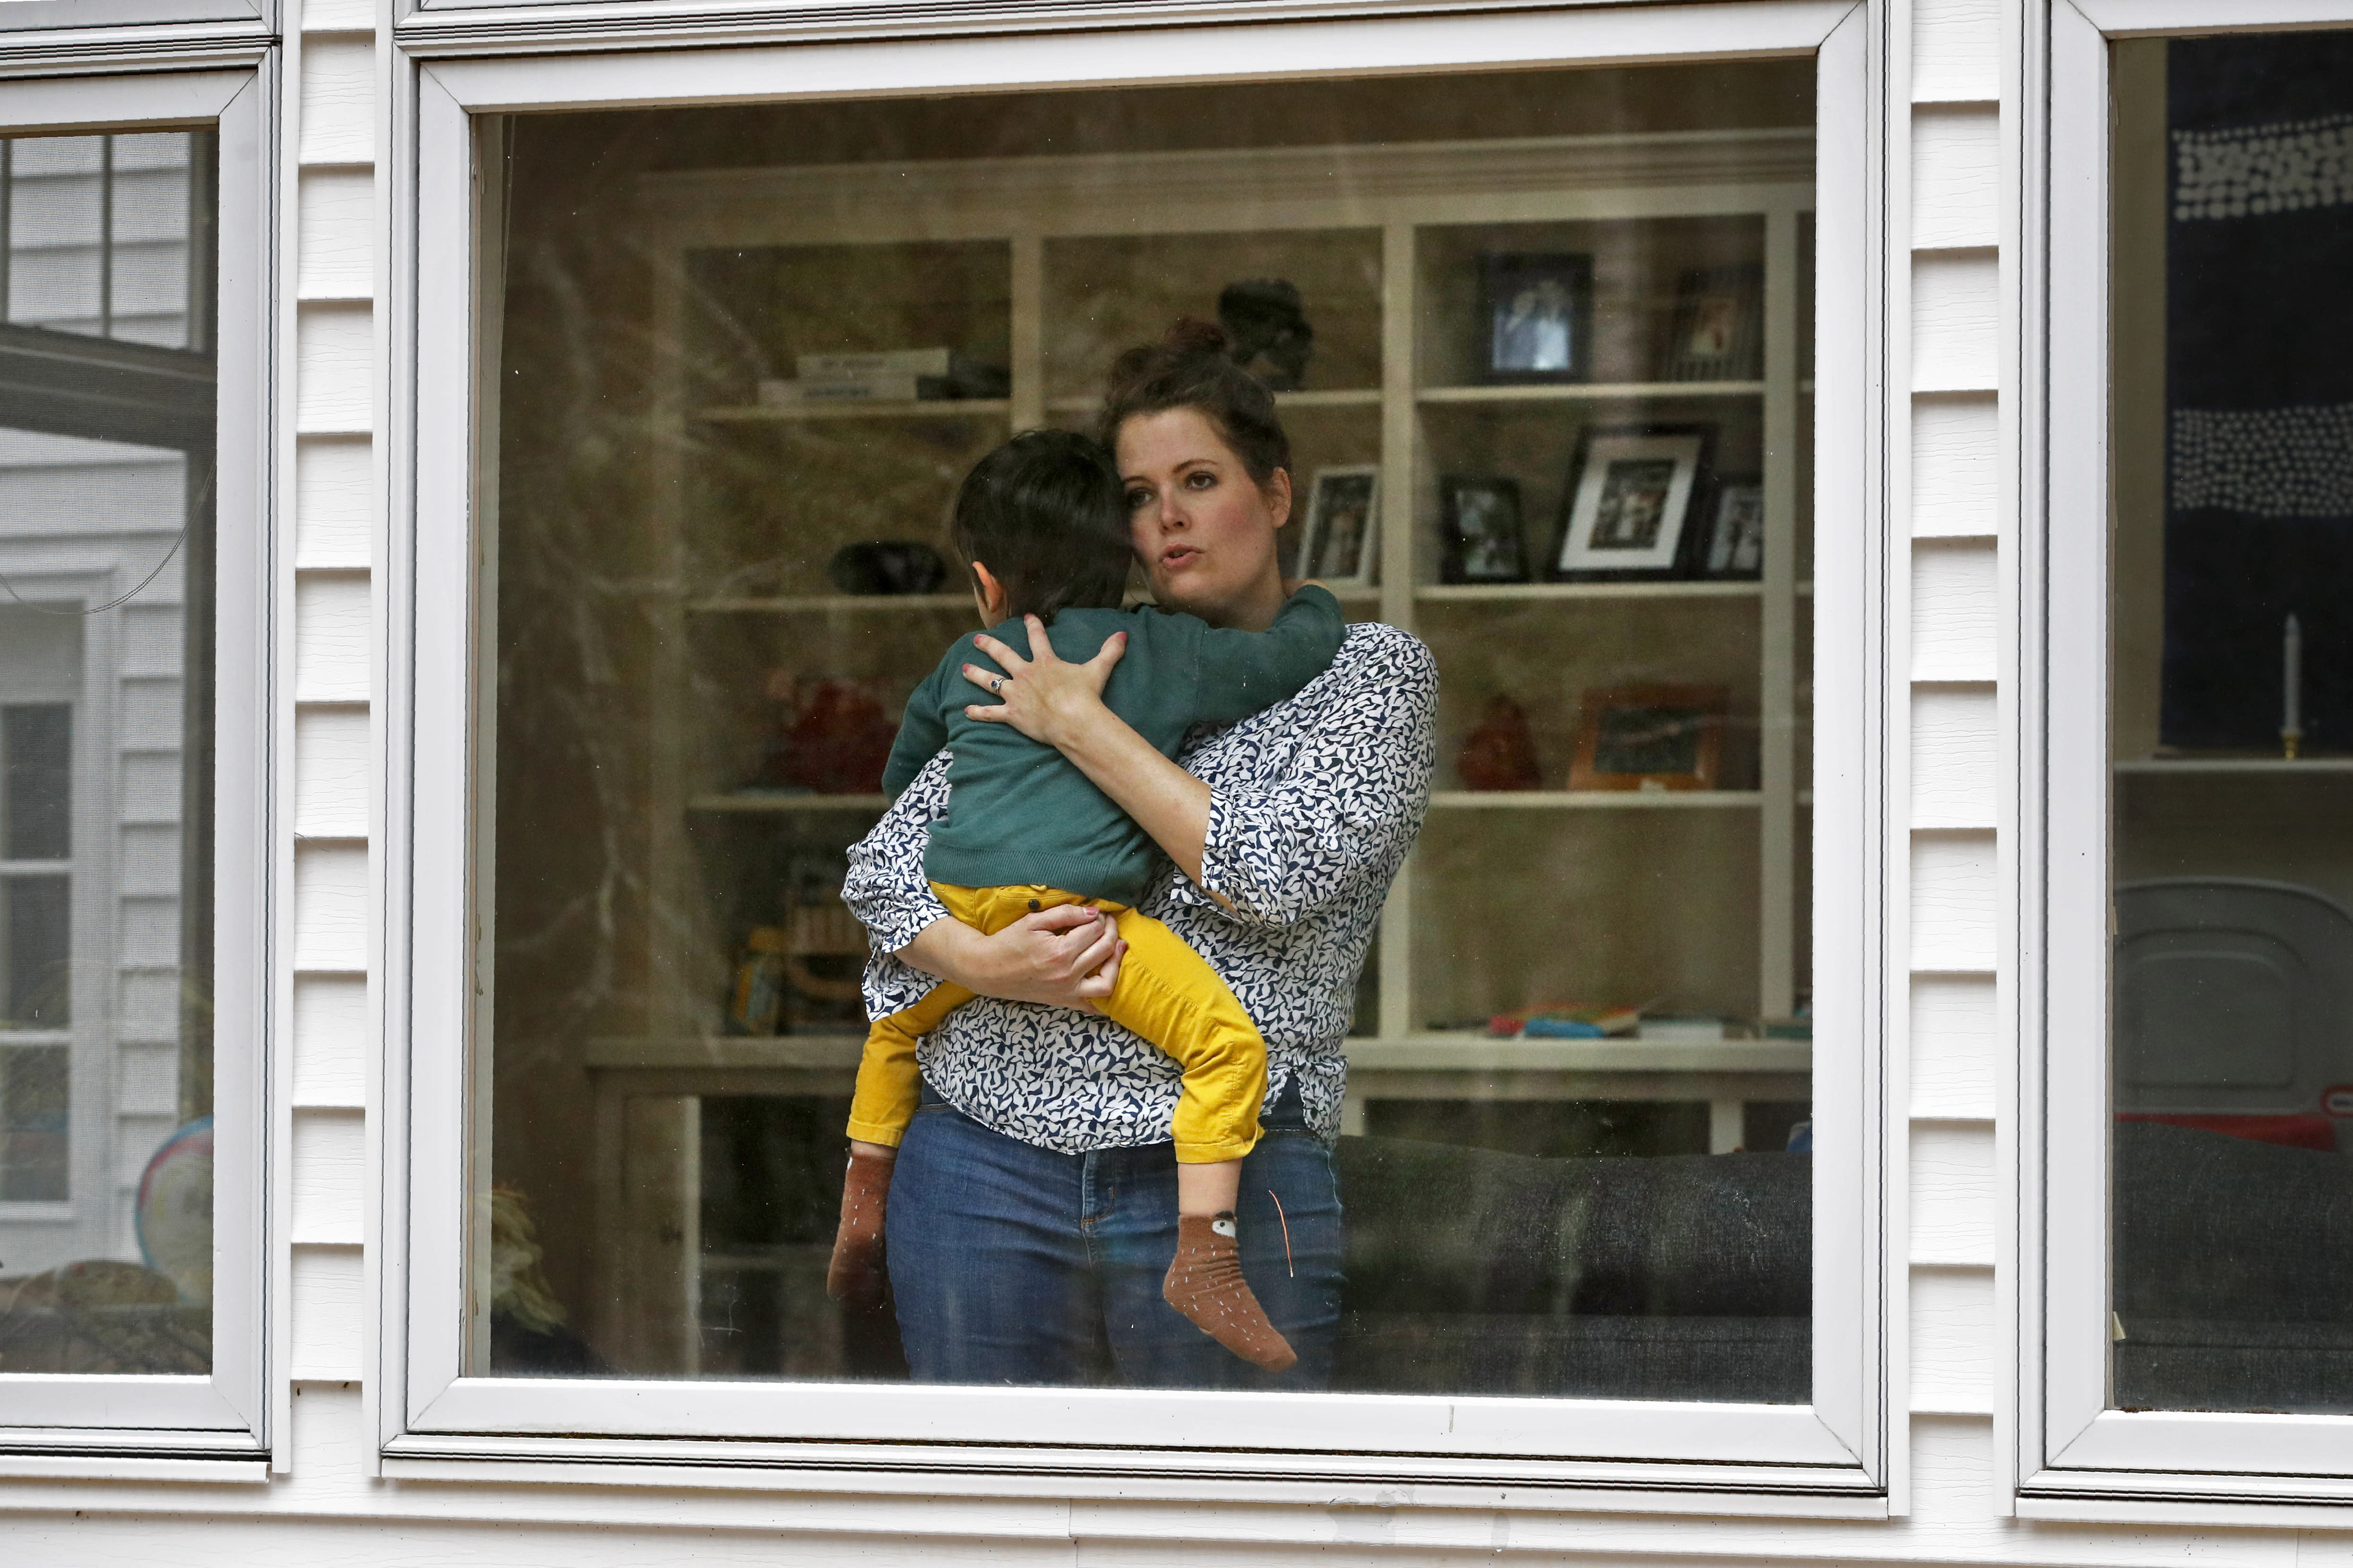 In this Wednesday, April 1, 2020 photo, Joy Engel holds her son at her home in Cape Elizabeth, Maine. Engel, who is pregnant, and her husband, Dr. Ben Hagopian, who works at a family practice and an urgent care clinic, decided to isolate themselves from each since the coronavirus outbreak. (AP Photo/Robert F. Bukaty)